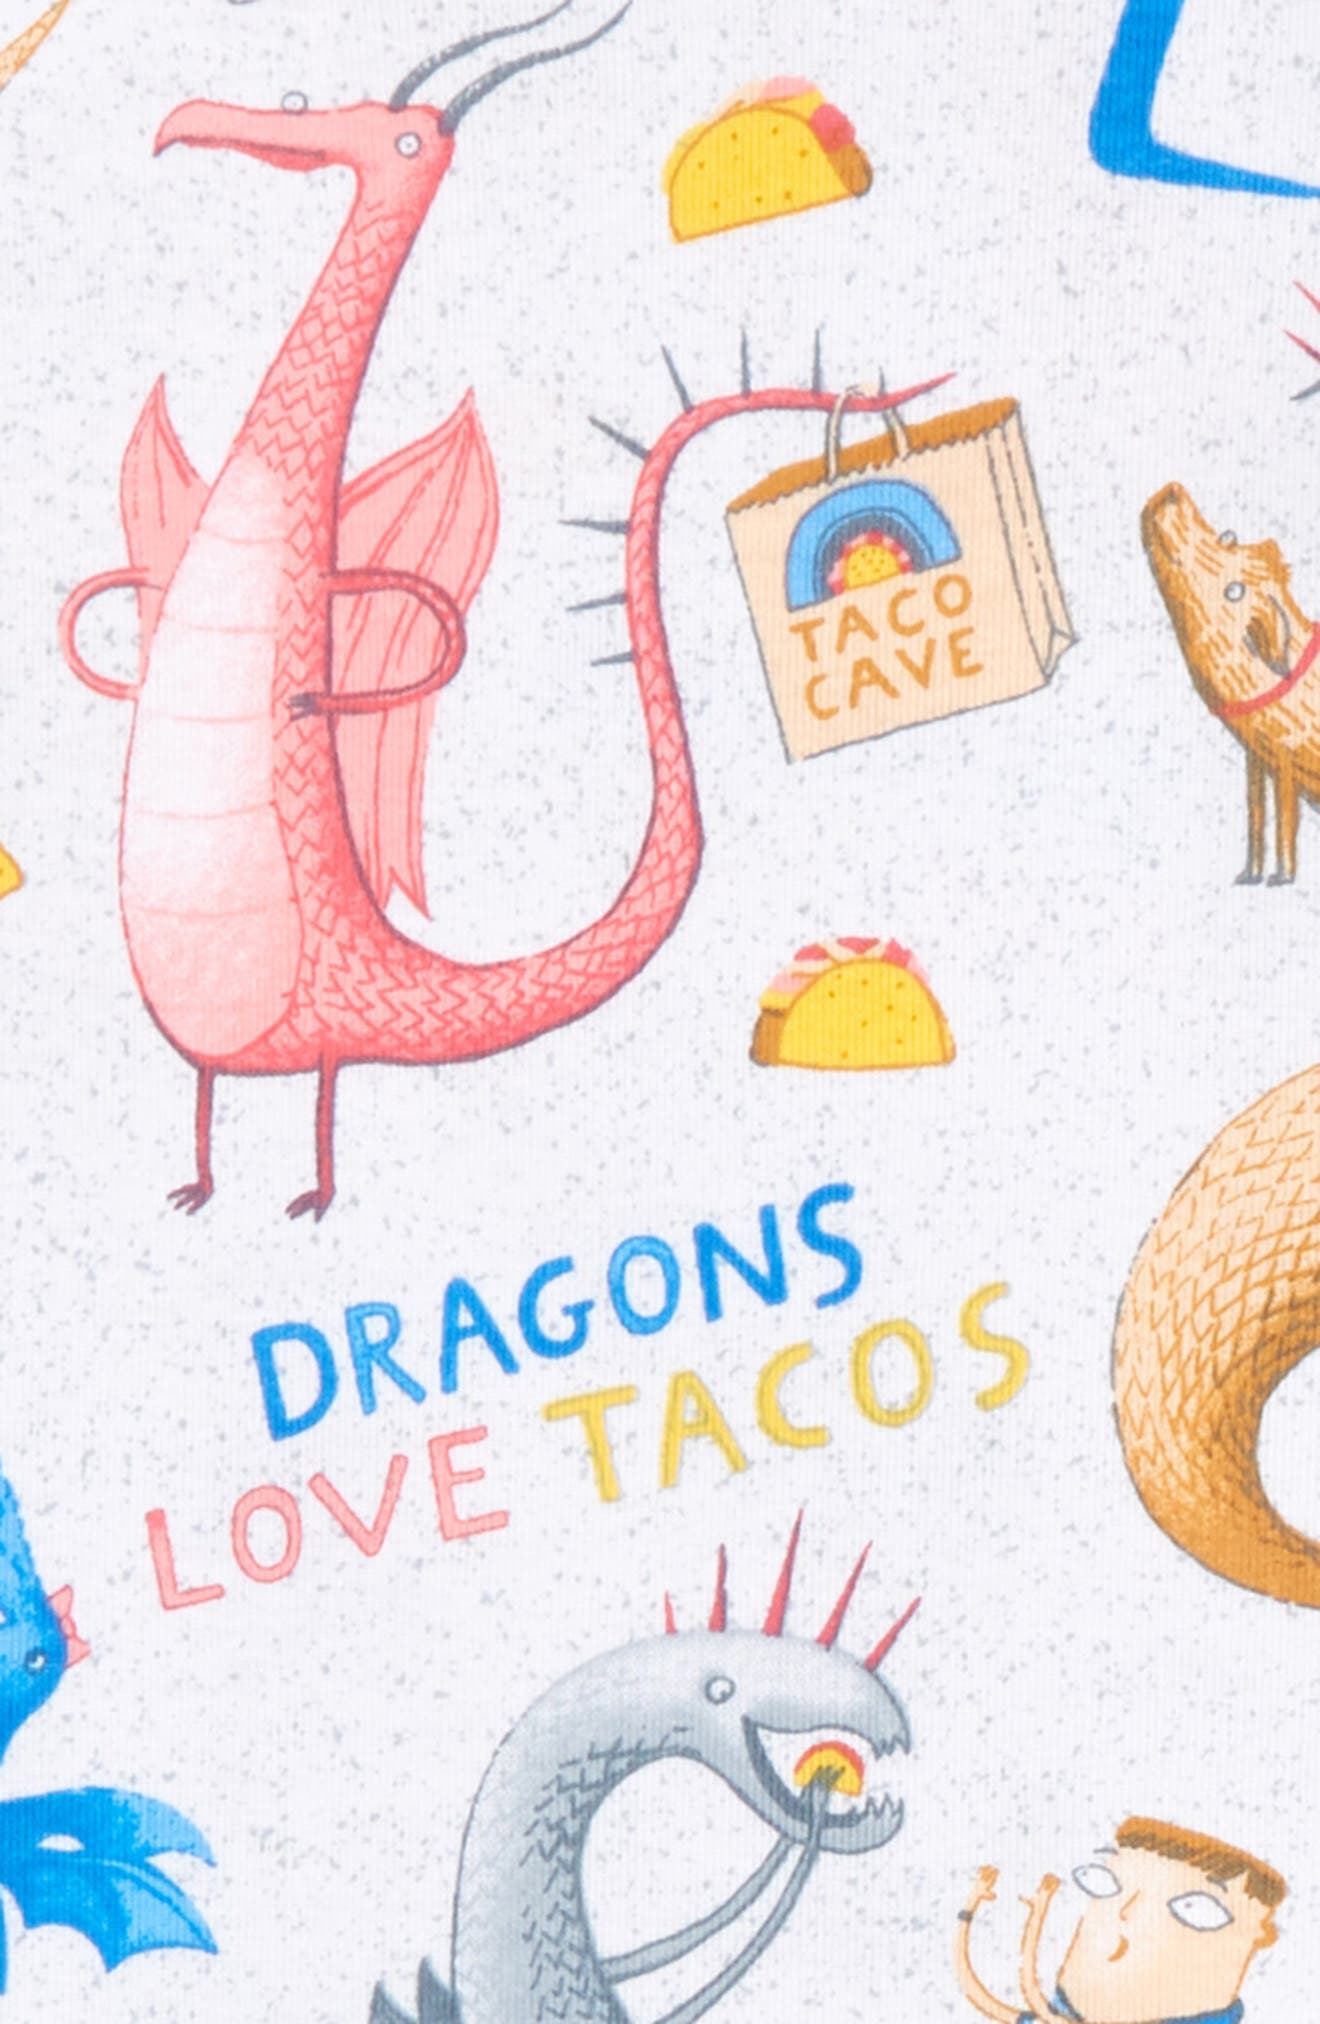 Dragons Love Tacos 2 Fitted Two-Piece Pajamas & Book Set,                             Alternate thumbnail 2, color,                             GREY